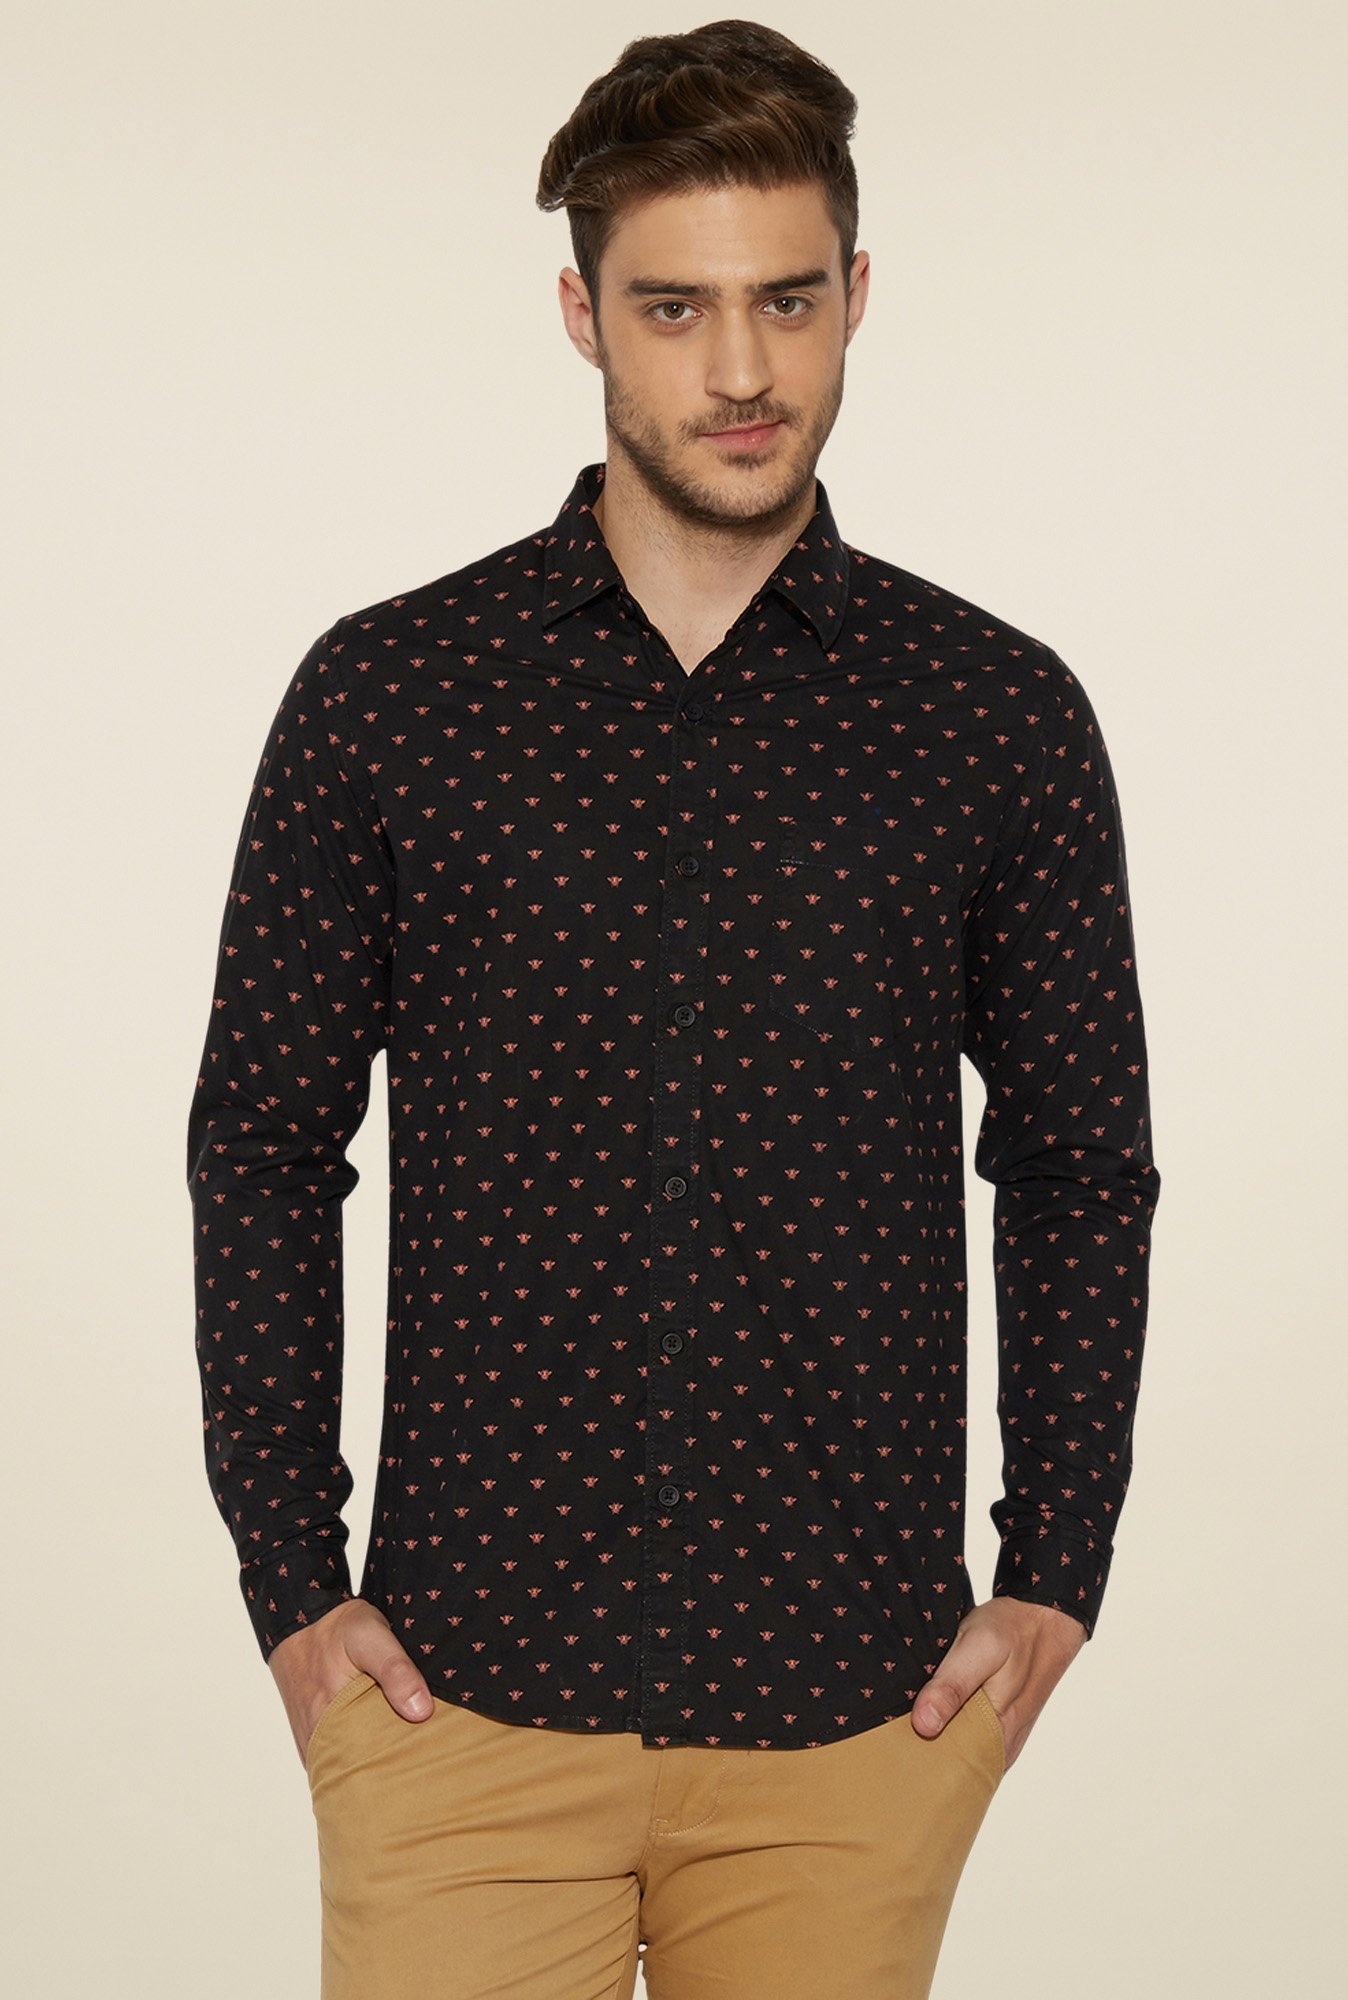 Globus Black Regular Fit Shirt